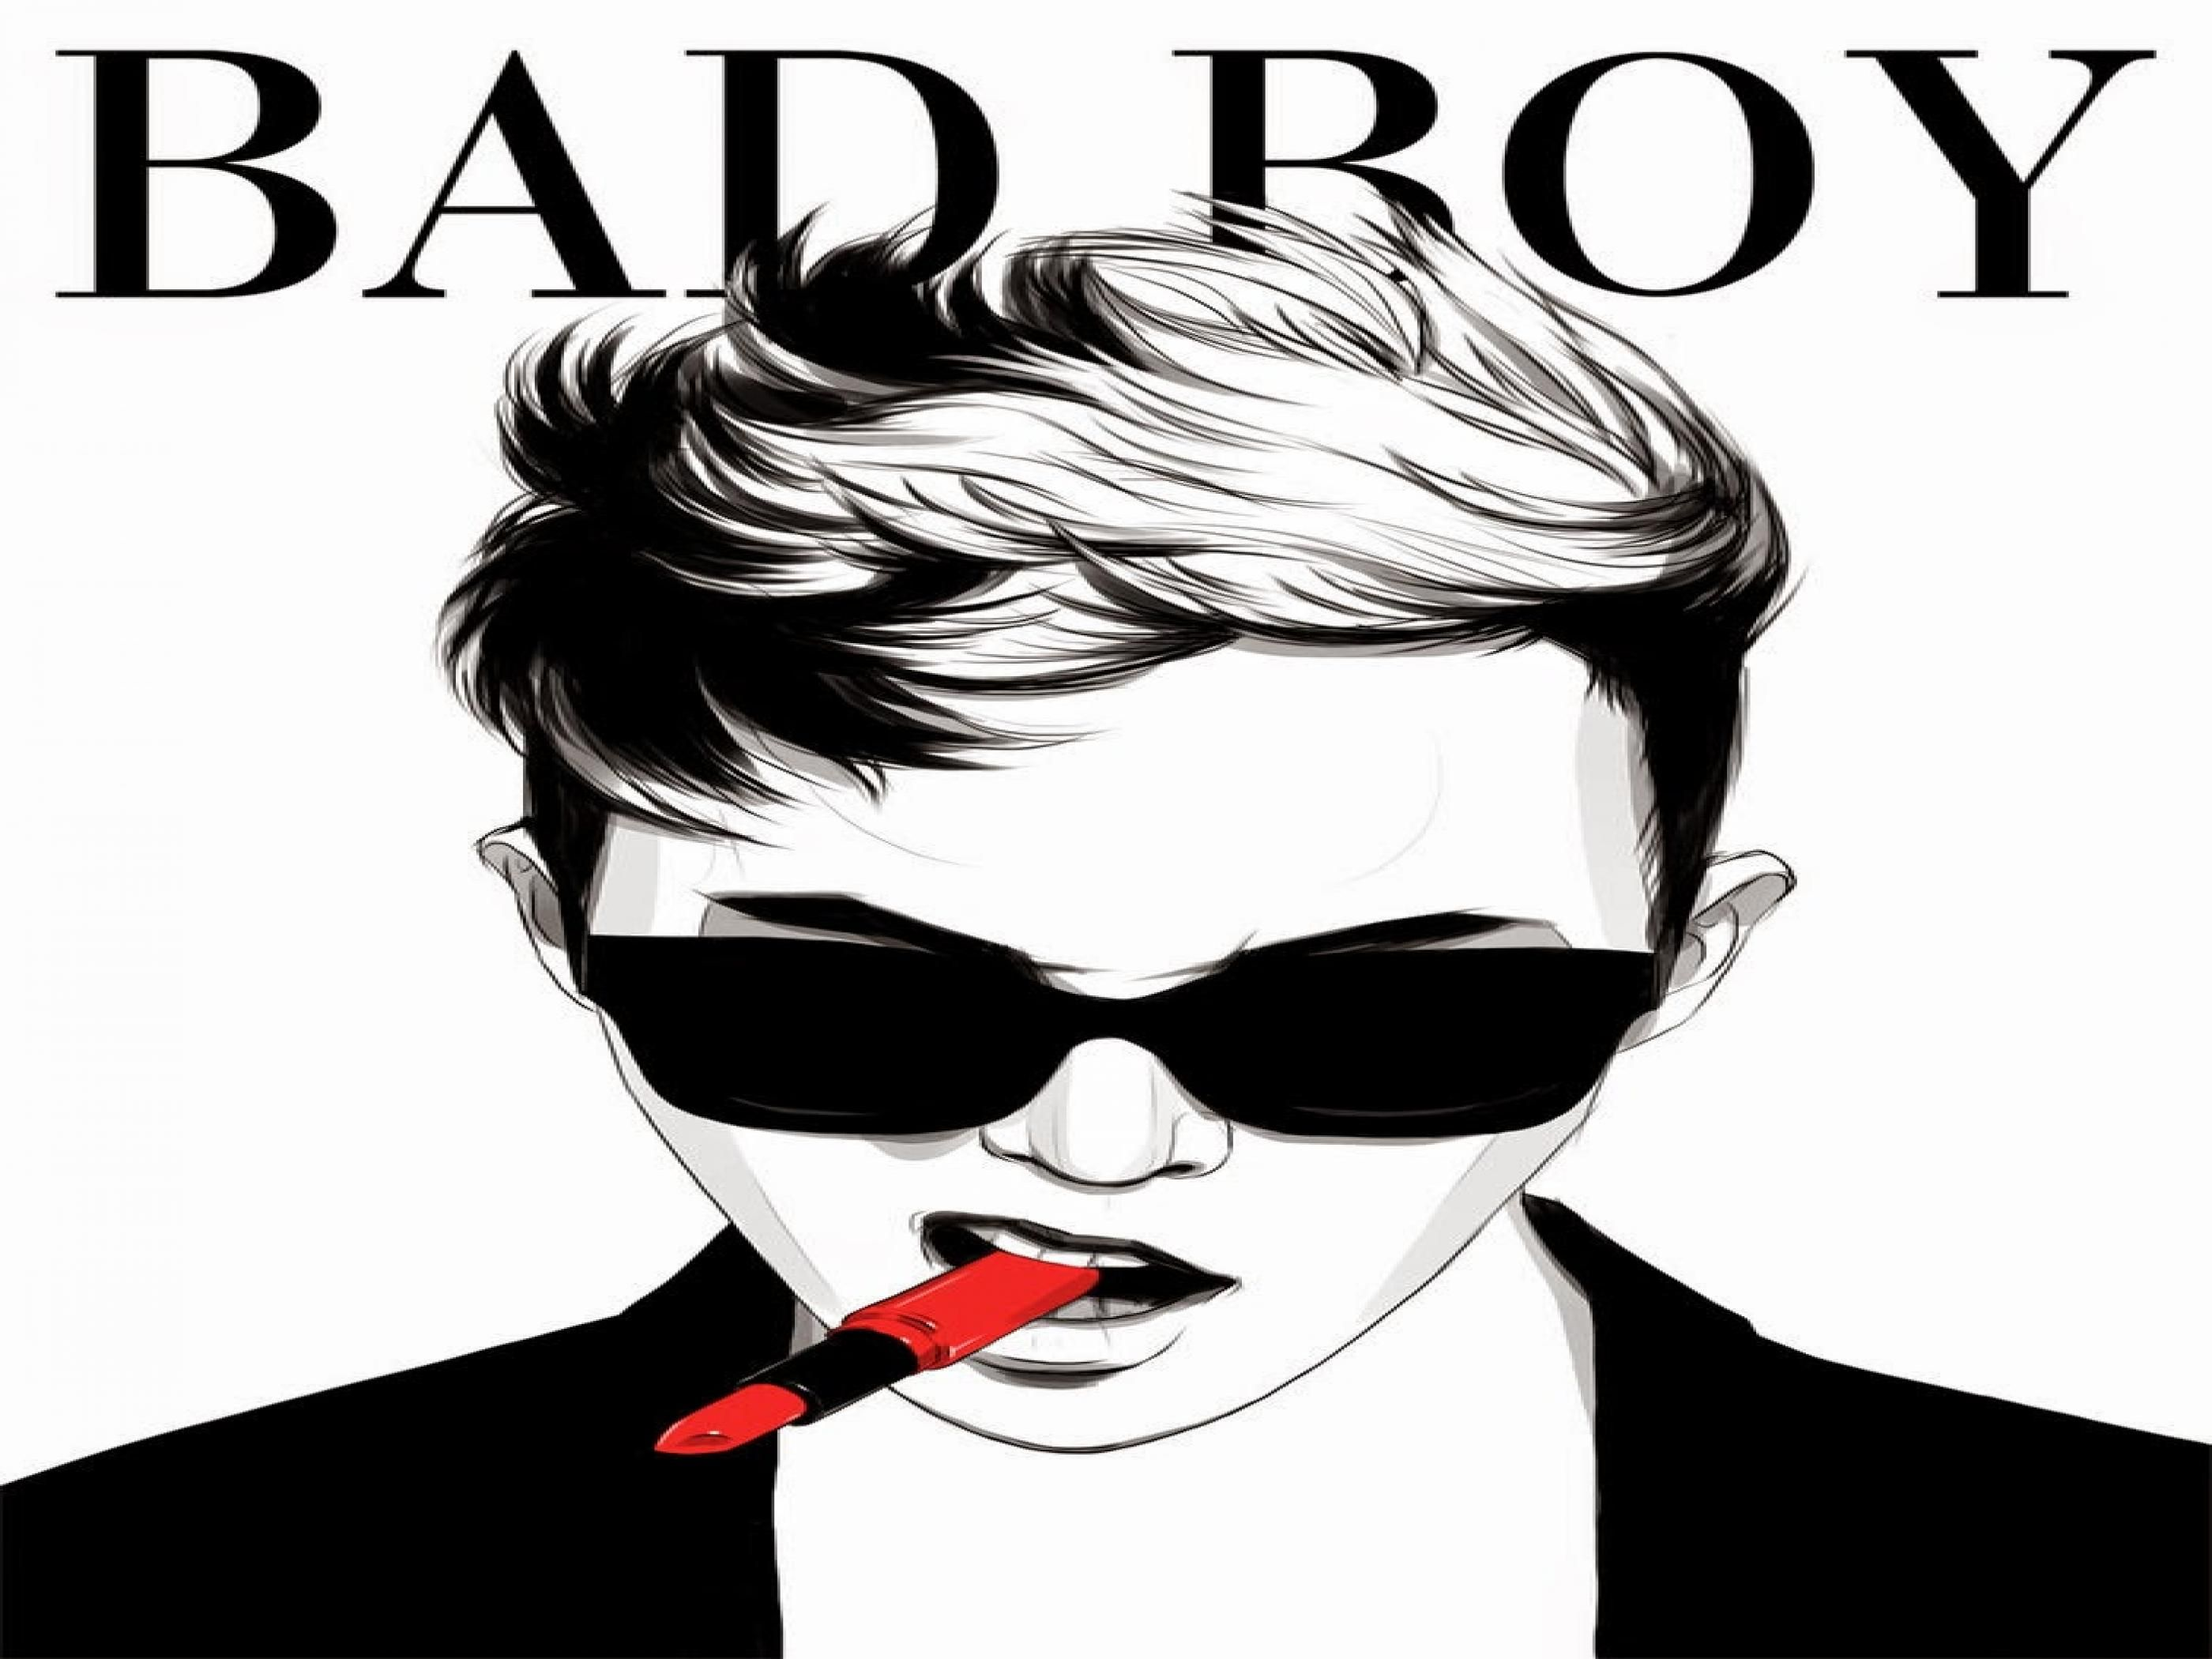 Bad Boy Wallpapers Top Free Bad Boy Backgrounds Wallpaperaccess